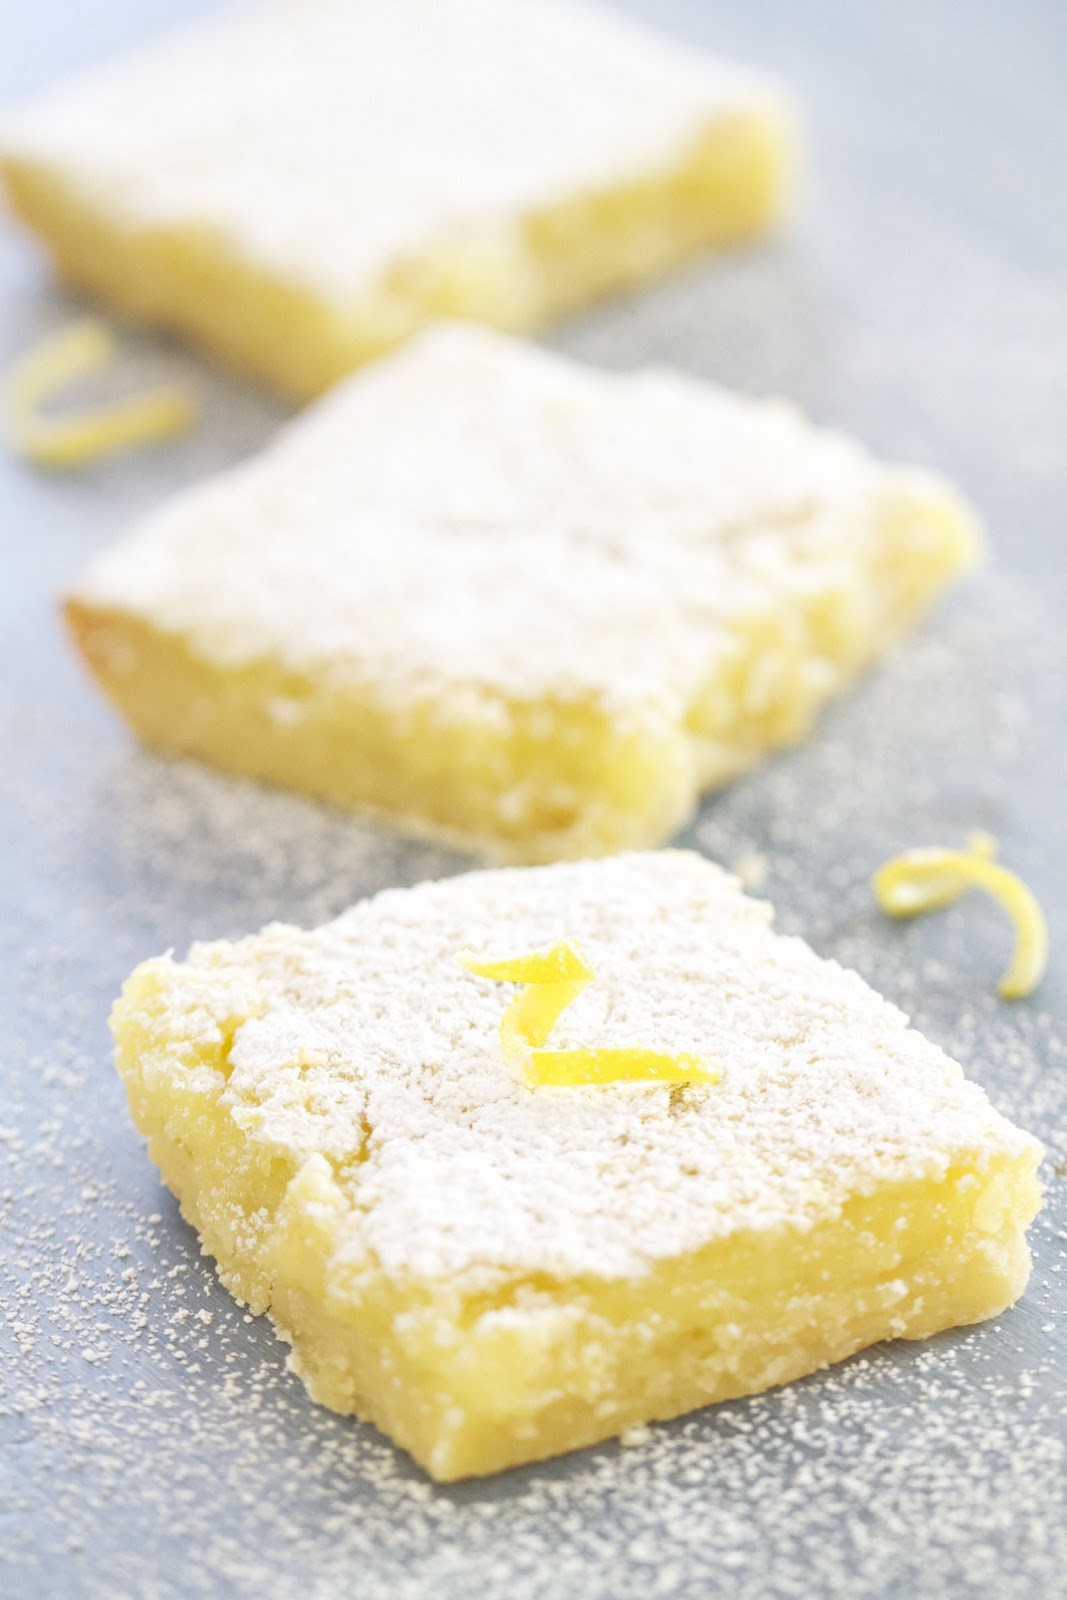 ... shortbread bars these lemon shortbread bars are my new favorite